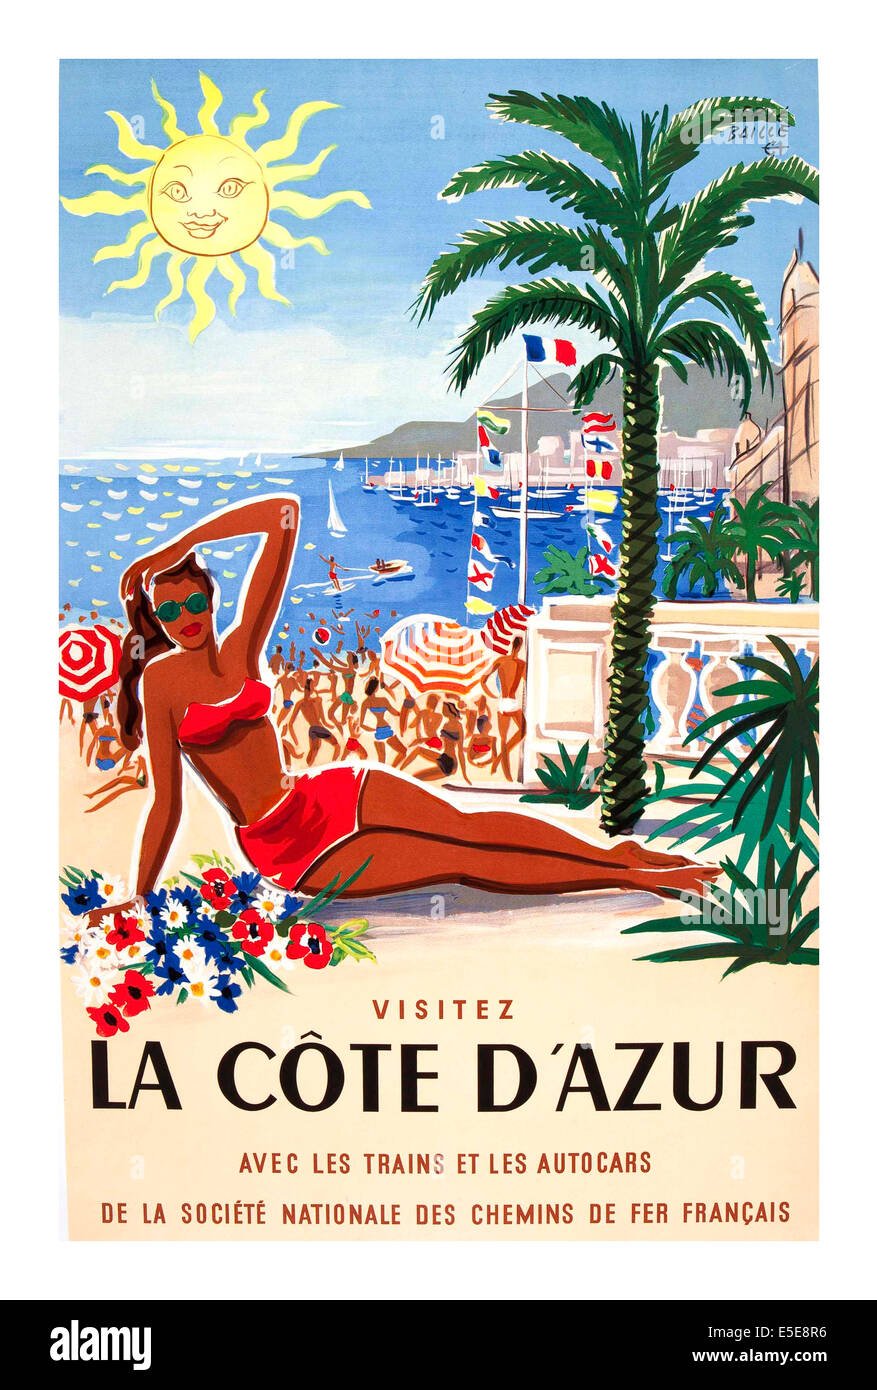 vintage poster cote d 39 azur pullman express french railway travel stock photo 72229002 alamy. Black Bedroom Furniture Sets. Home Design Ideas